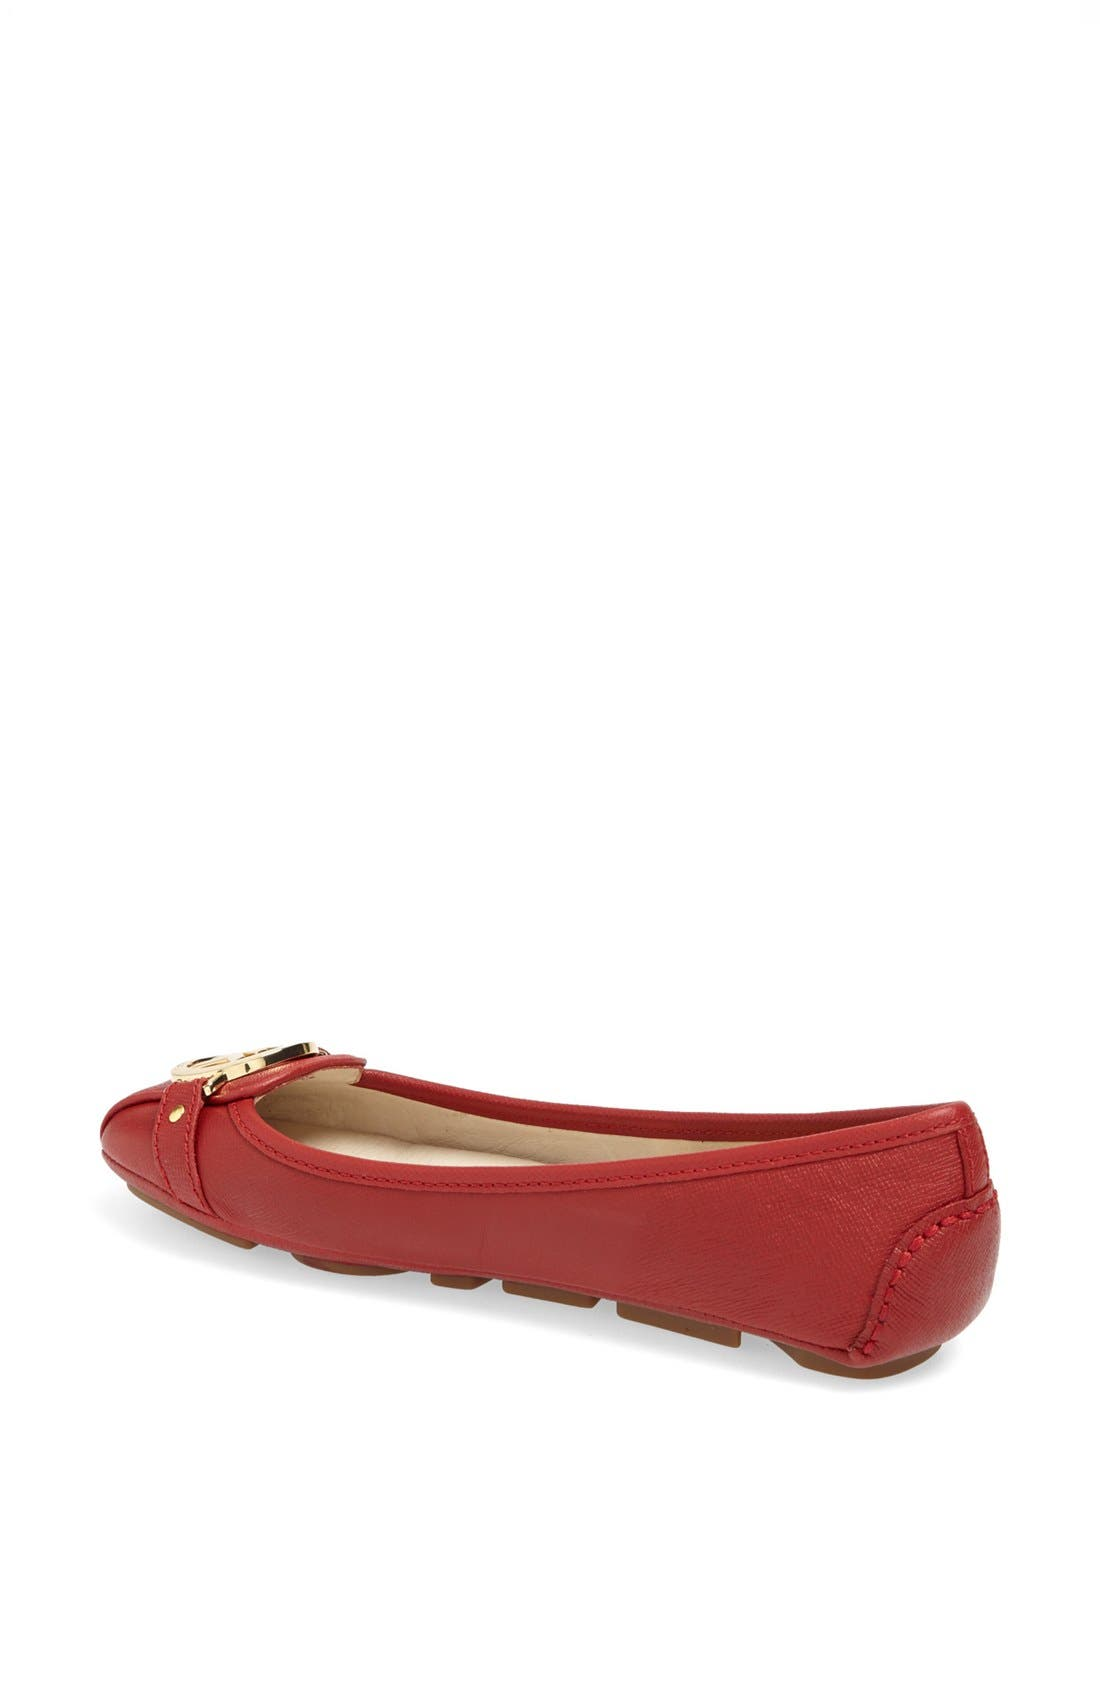 Alternate Image 2  - MICHAEL Michael Kors 'Fulton' Moccasin Slip-On